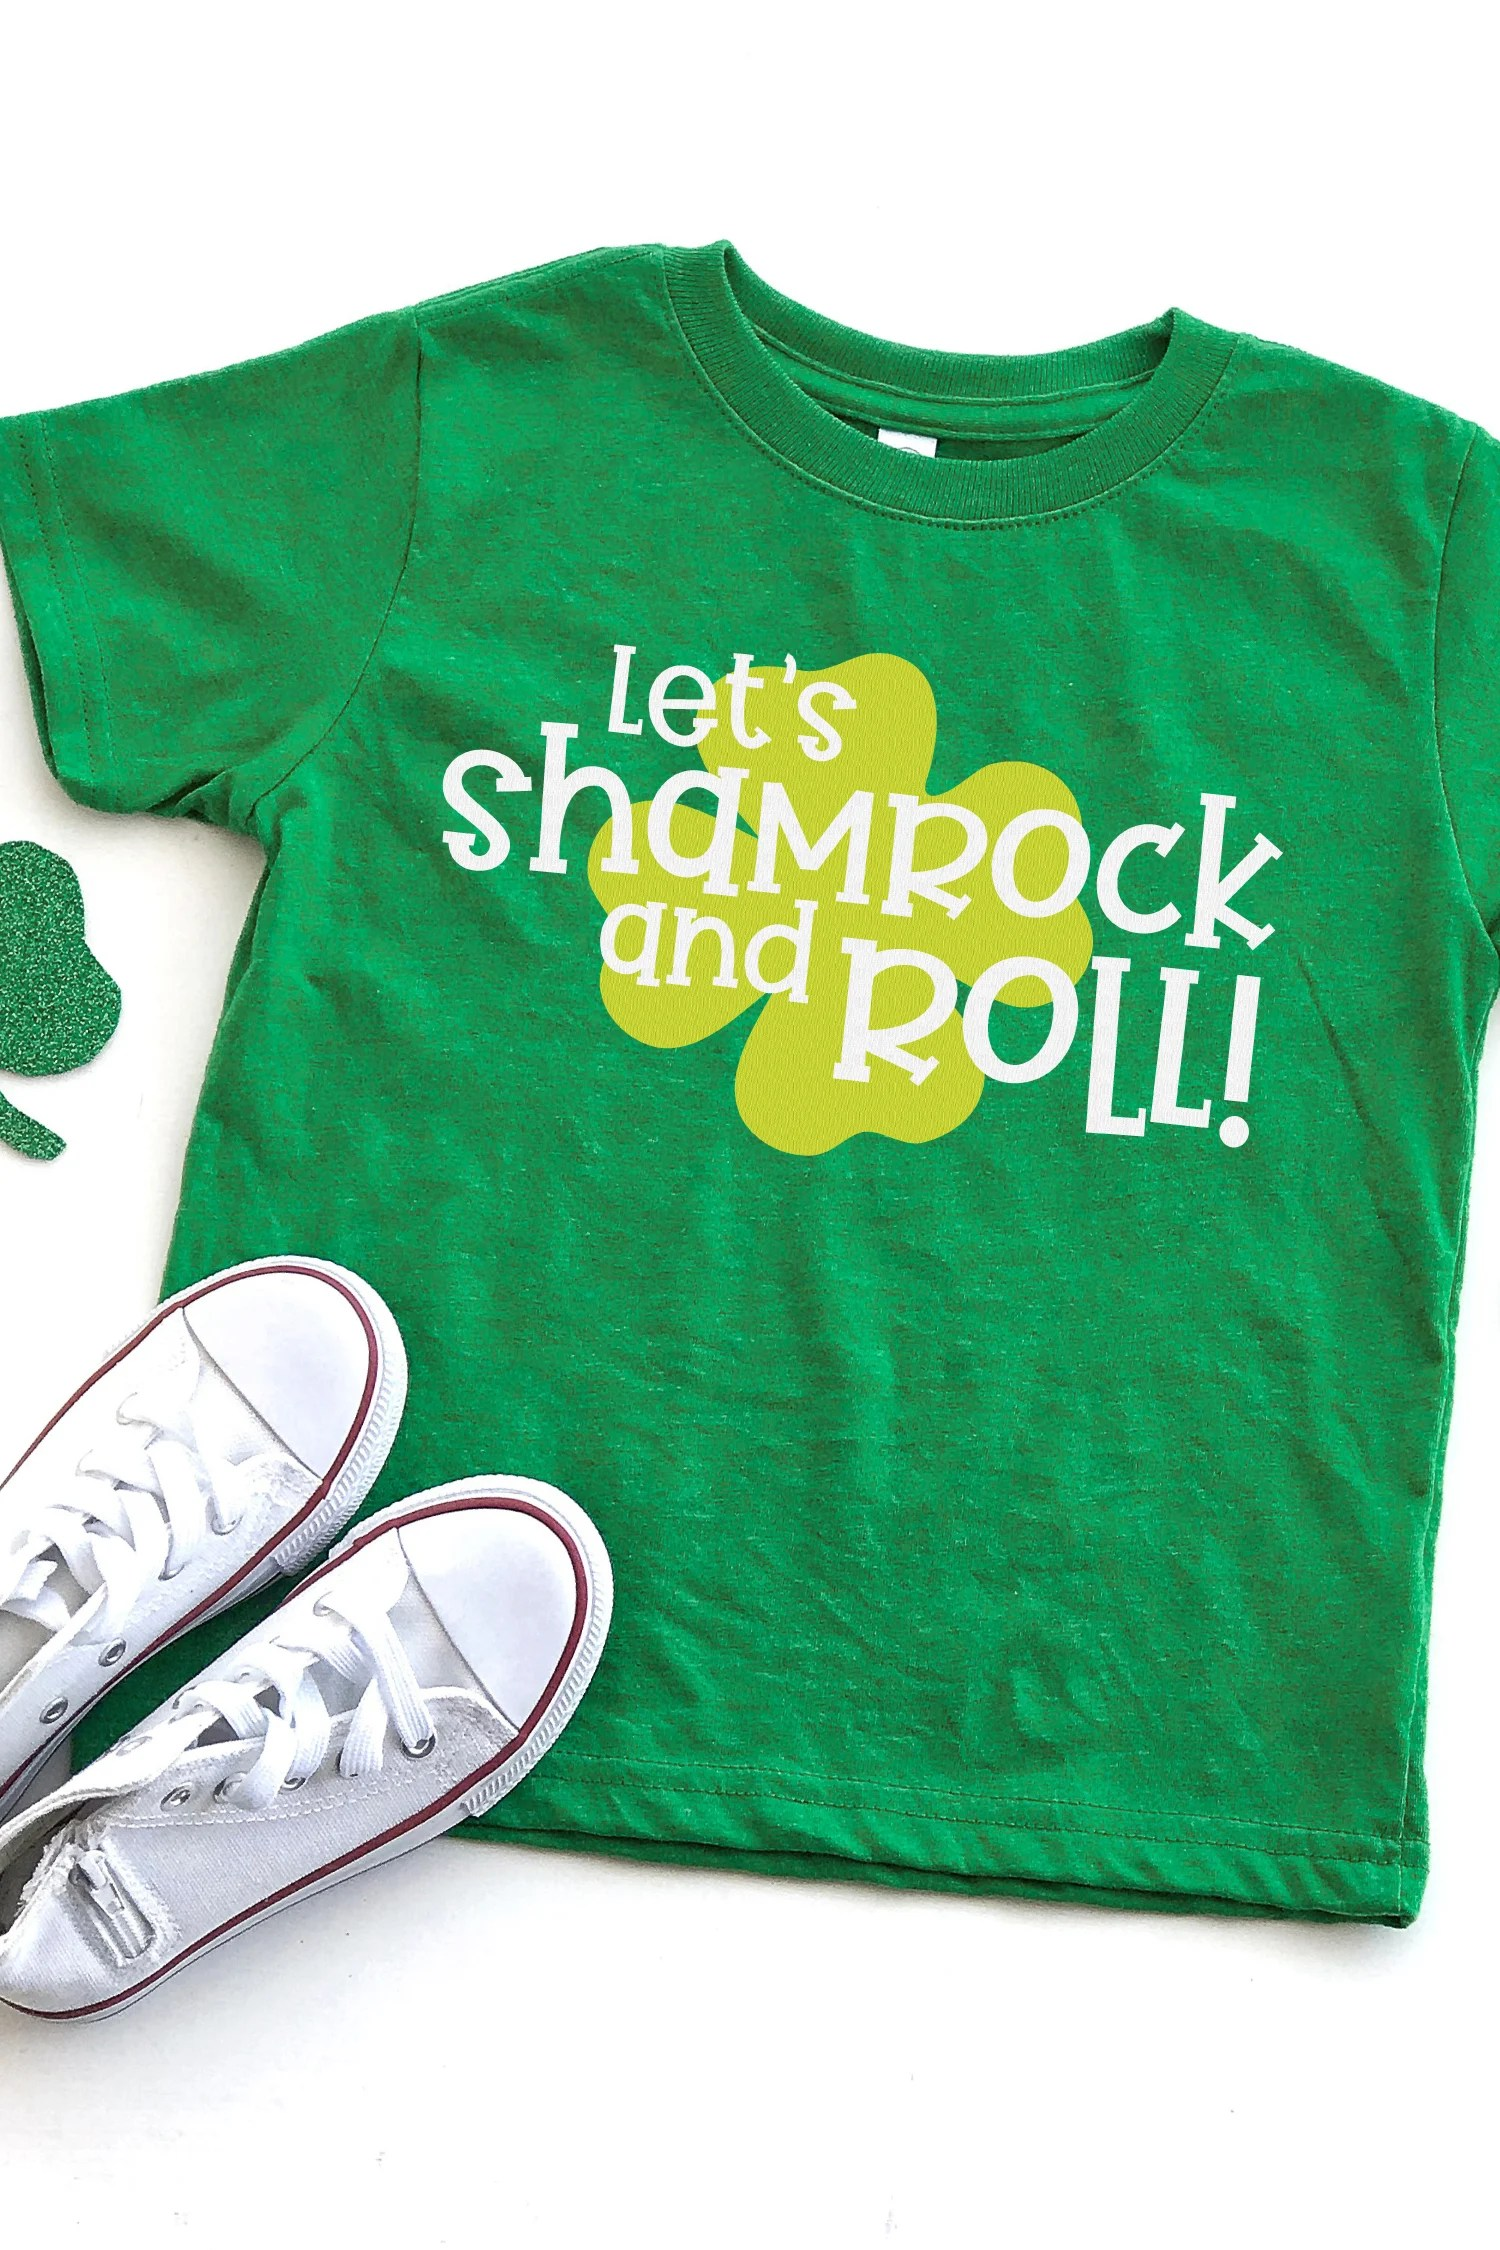 Shamrocks, leprechauns, pots of gold and rainbows - it's almost like St. Patrick's Day was made for kids. Use this Kids St. Patrick's Day SVG Bundle to add some luck of the Irish embellishment to t-shirts, onesies, greeting cards, treat bags and so much more!